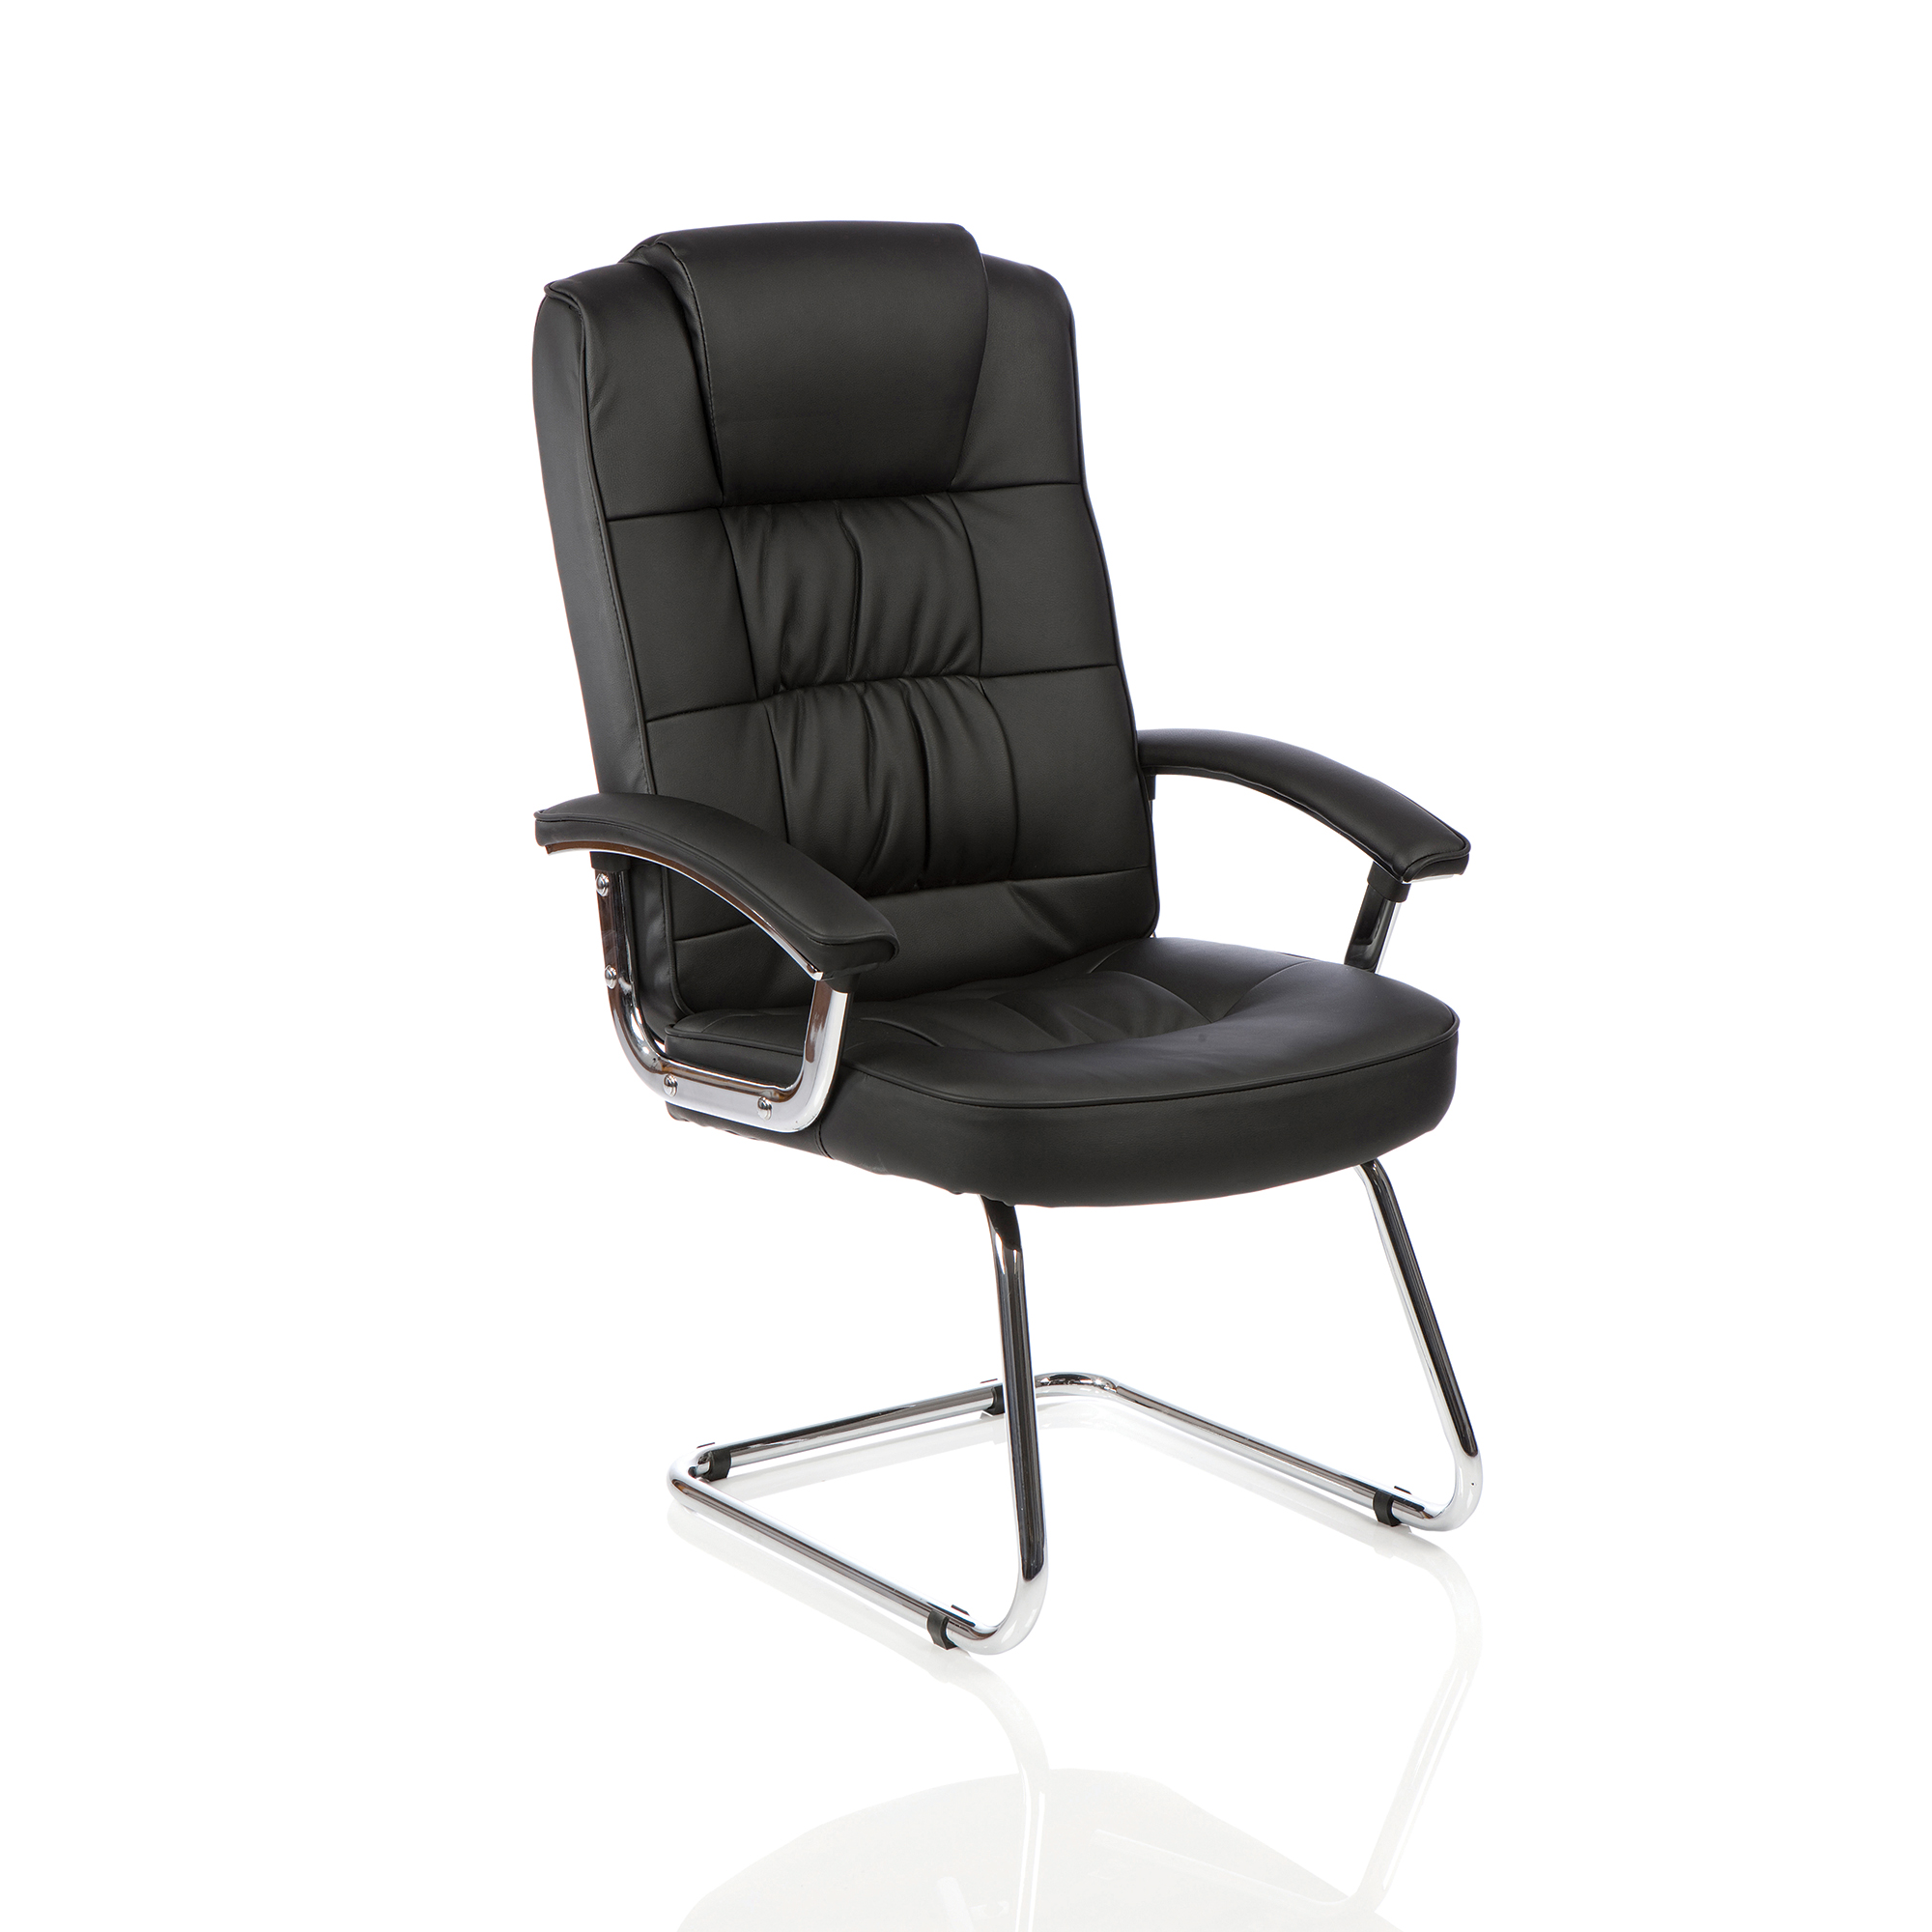 Guest seating Trexus Moore Deluxe Visitor Cantilever Chair With Arms Leather Black Ref KC0152